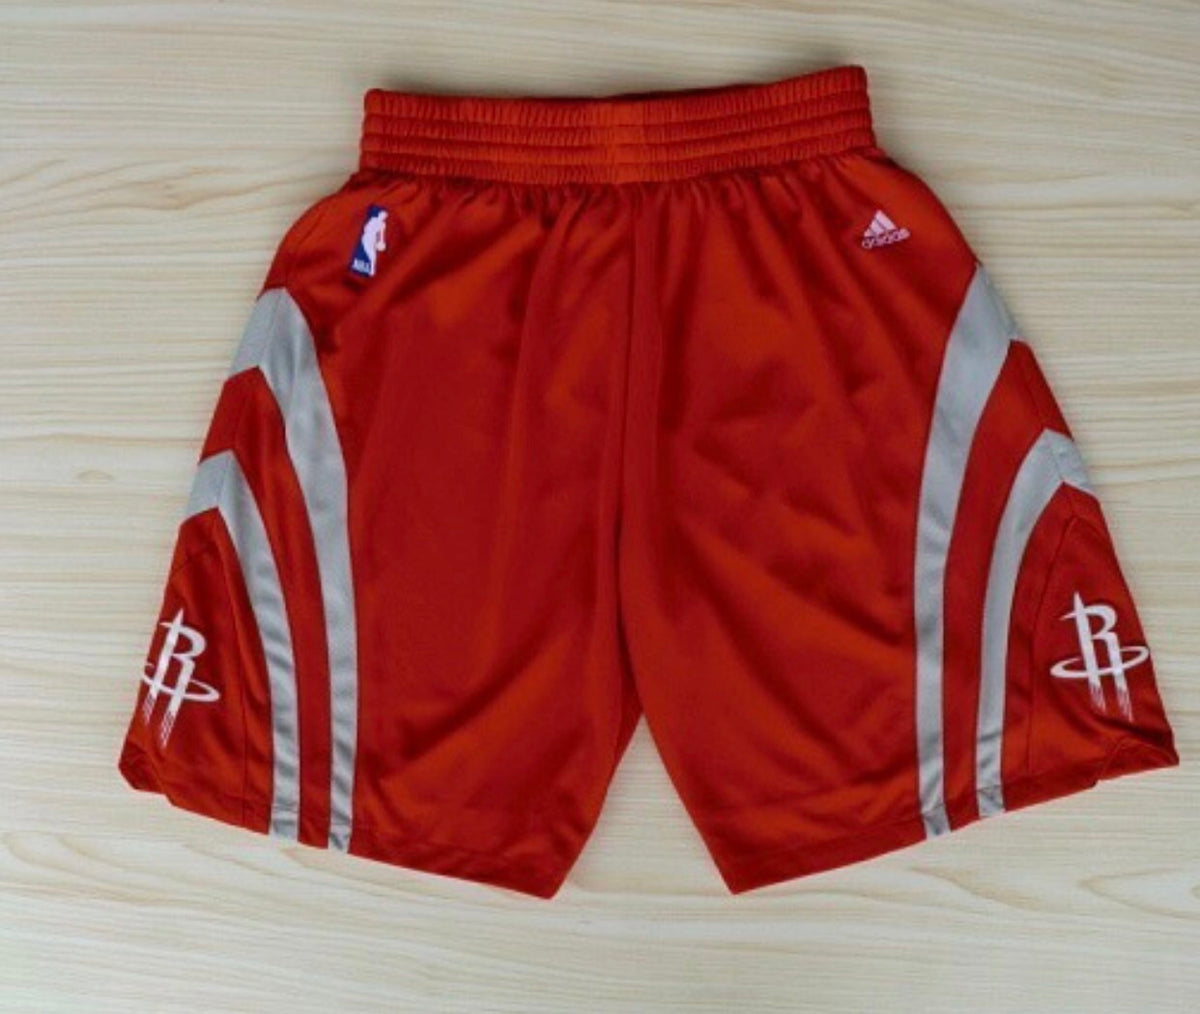 Throwback Rockets Shorts